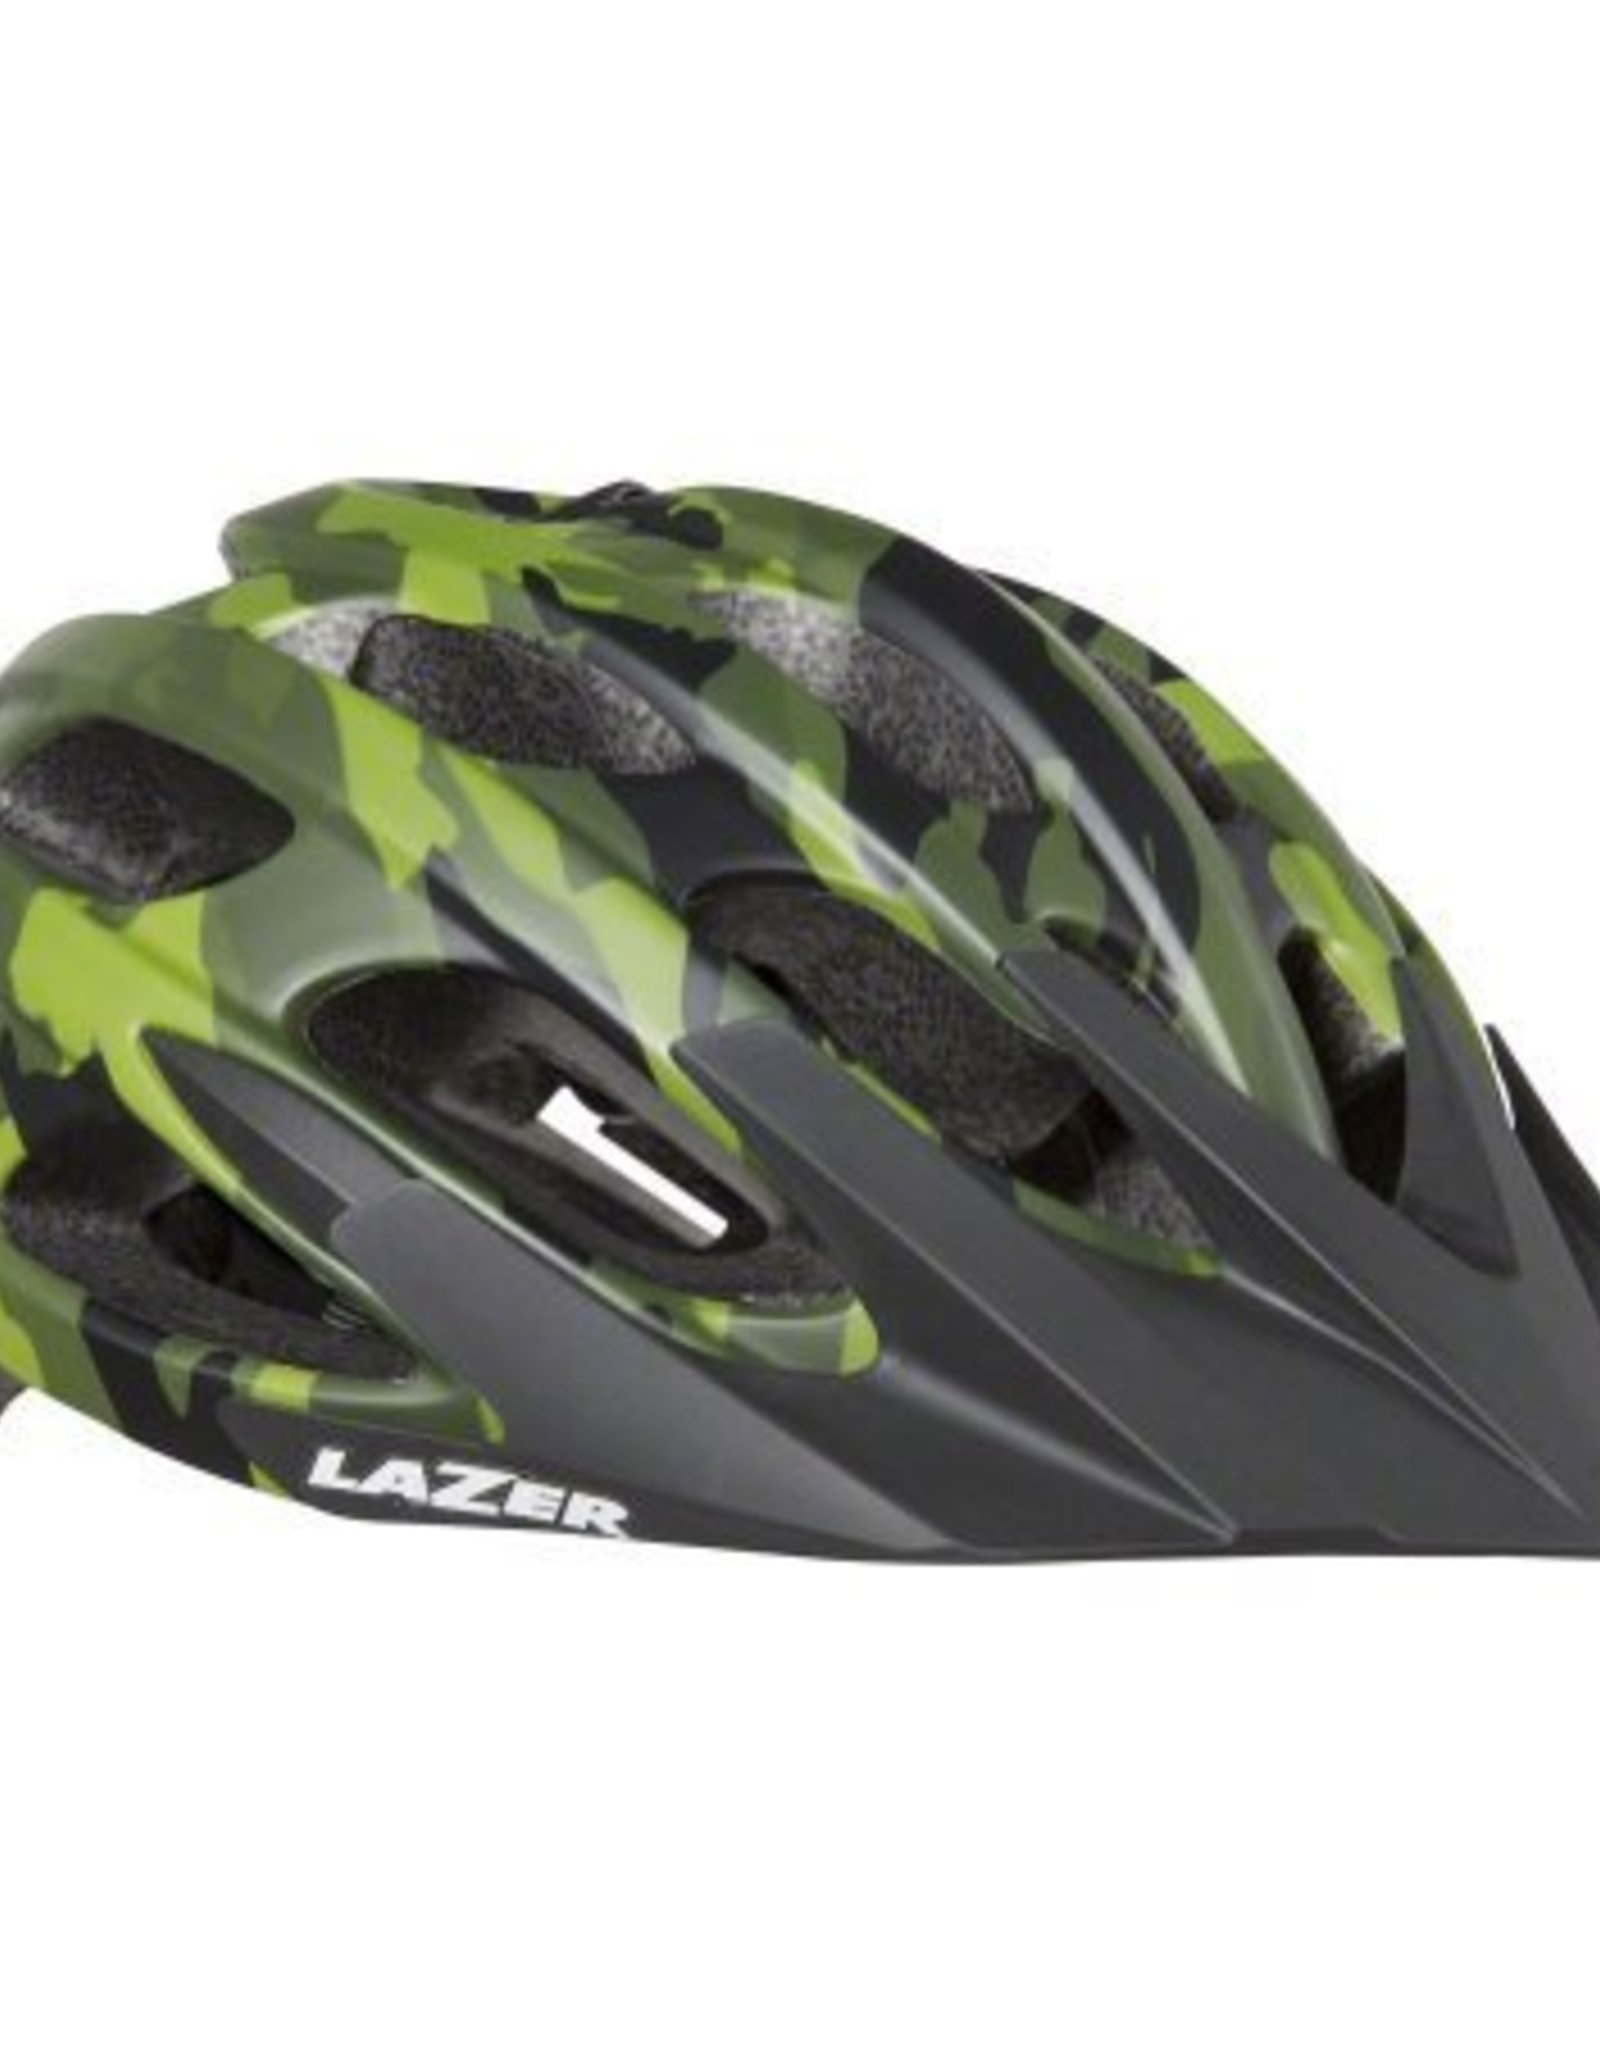 Lazer Lazer Magma Helmet: Matte Camo Flash Orange, LG